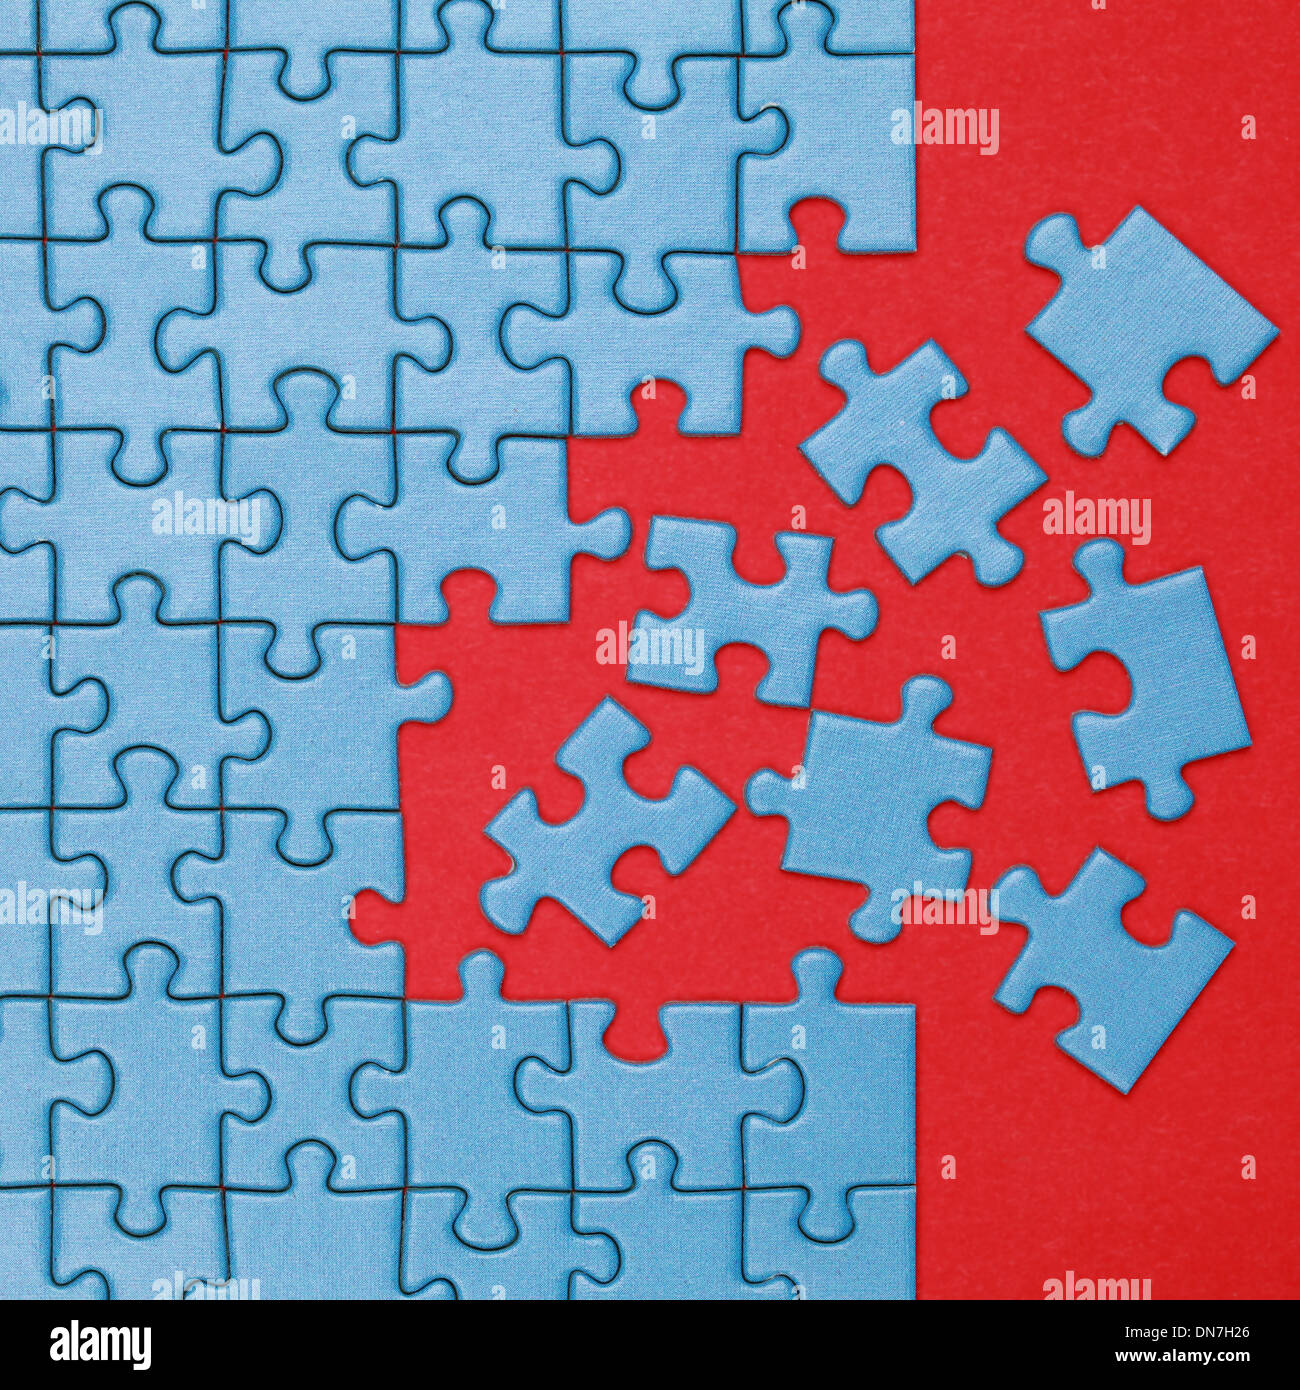 Pieces of a jigsaw puzzle have to be put in the right place - Stock Image